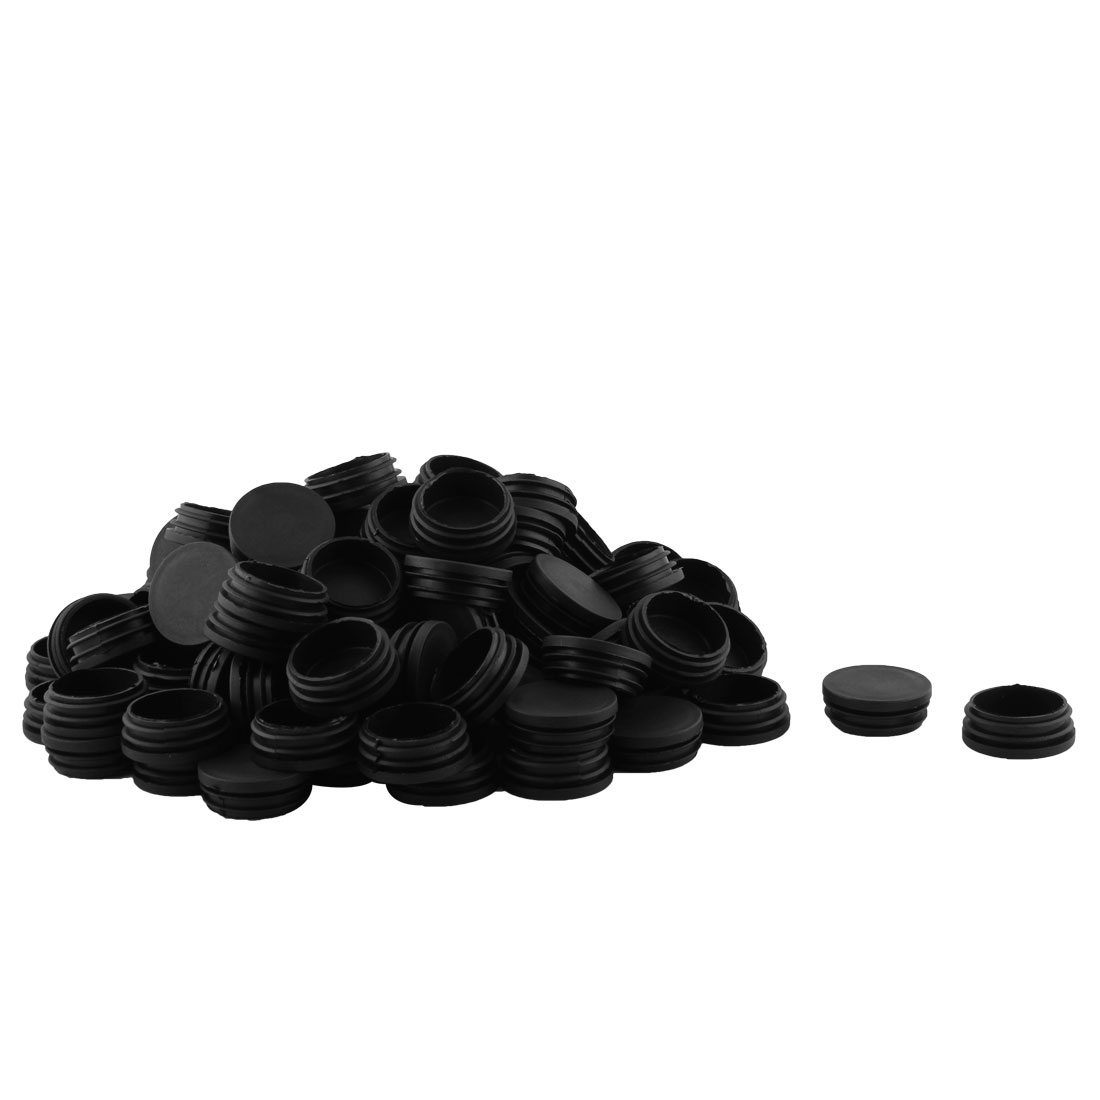 Office Plastic Round Shaped Furniture Table Chair Leg Foot Tube Insert Black 100 Pcs